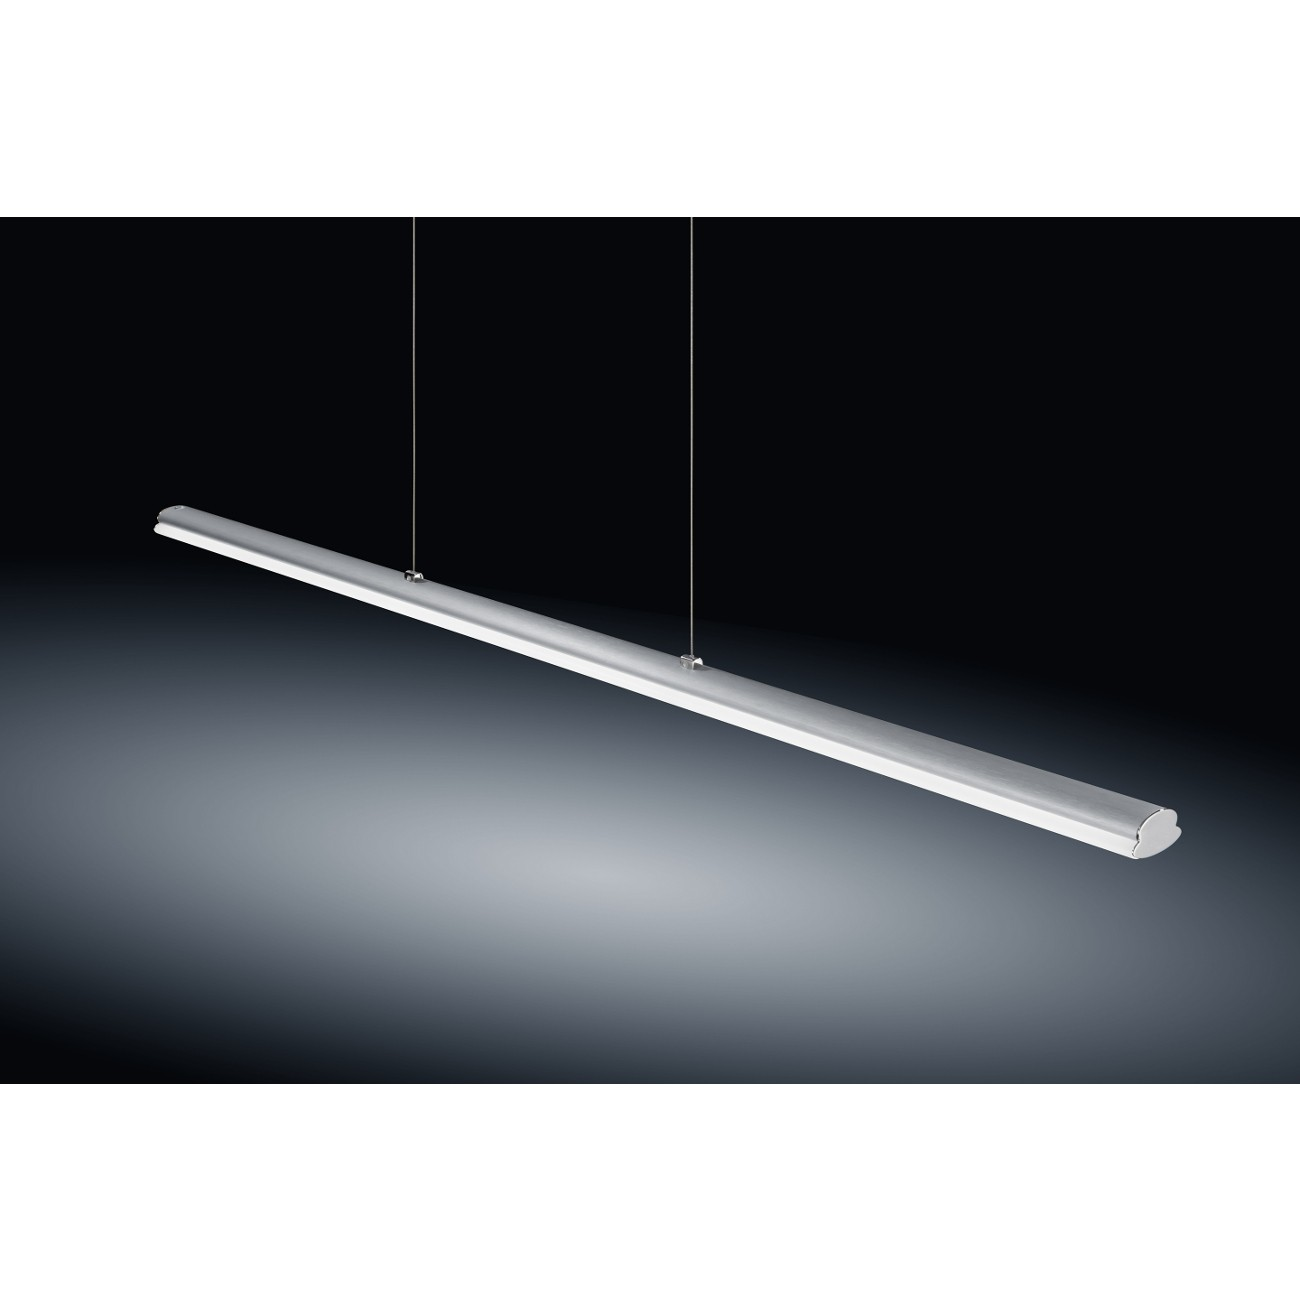 LED-Pendelleuchte VENTA 16/ 1645 Nickel matt/ Chrom